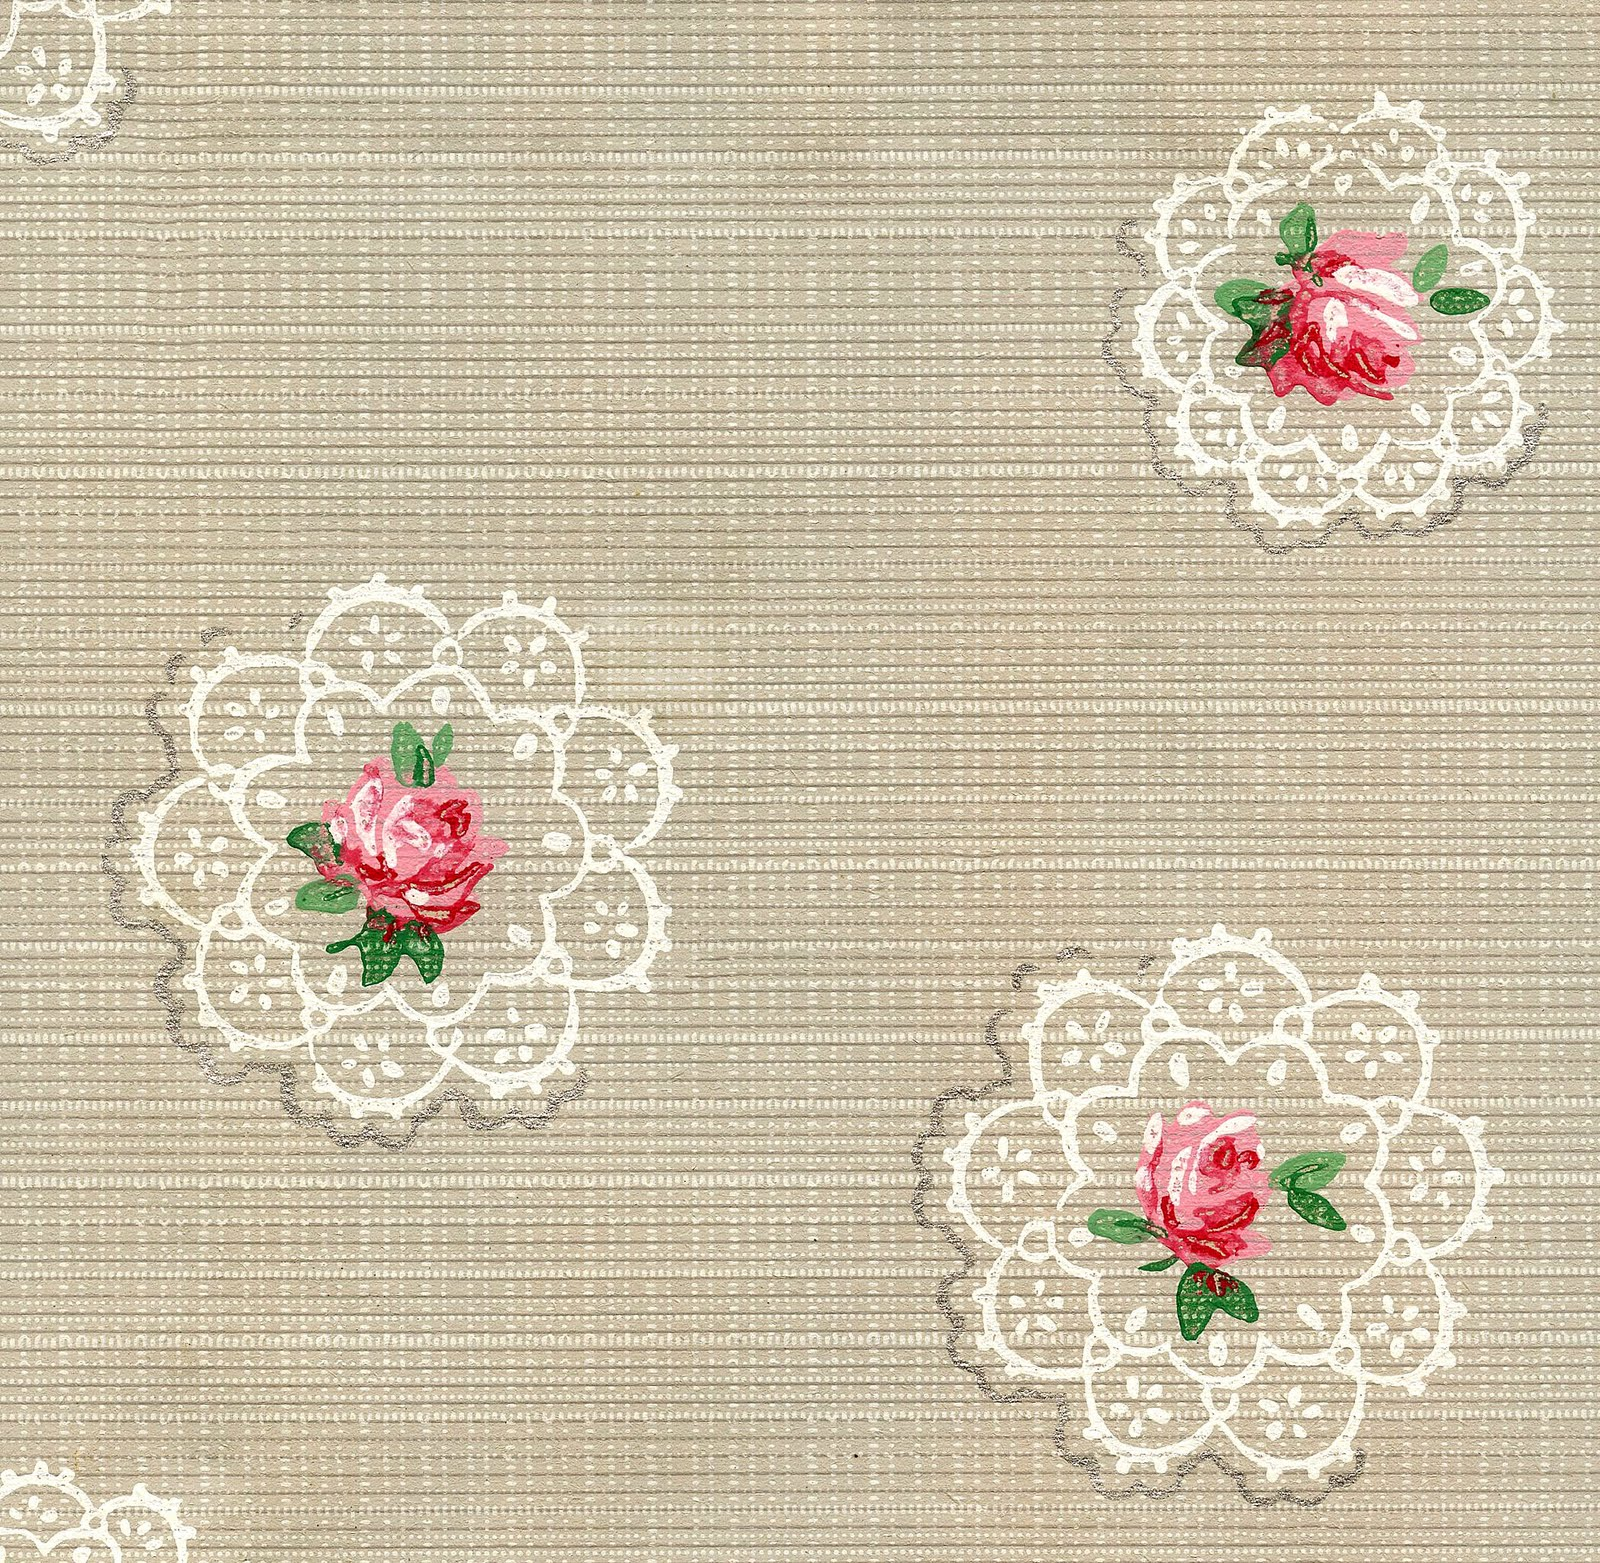 Great Wallpaper Hello Kitty Fairy - doily-wallpaper-graphicsfairy008b  Pic_246032.jpg